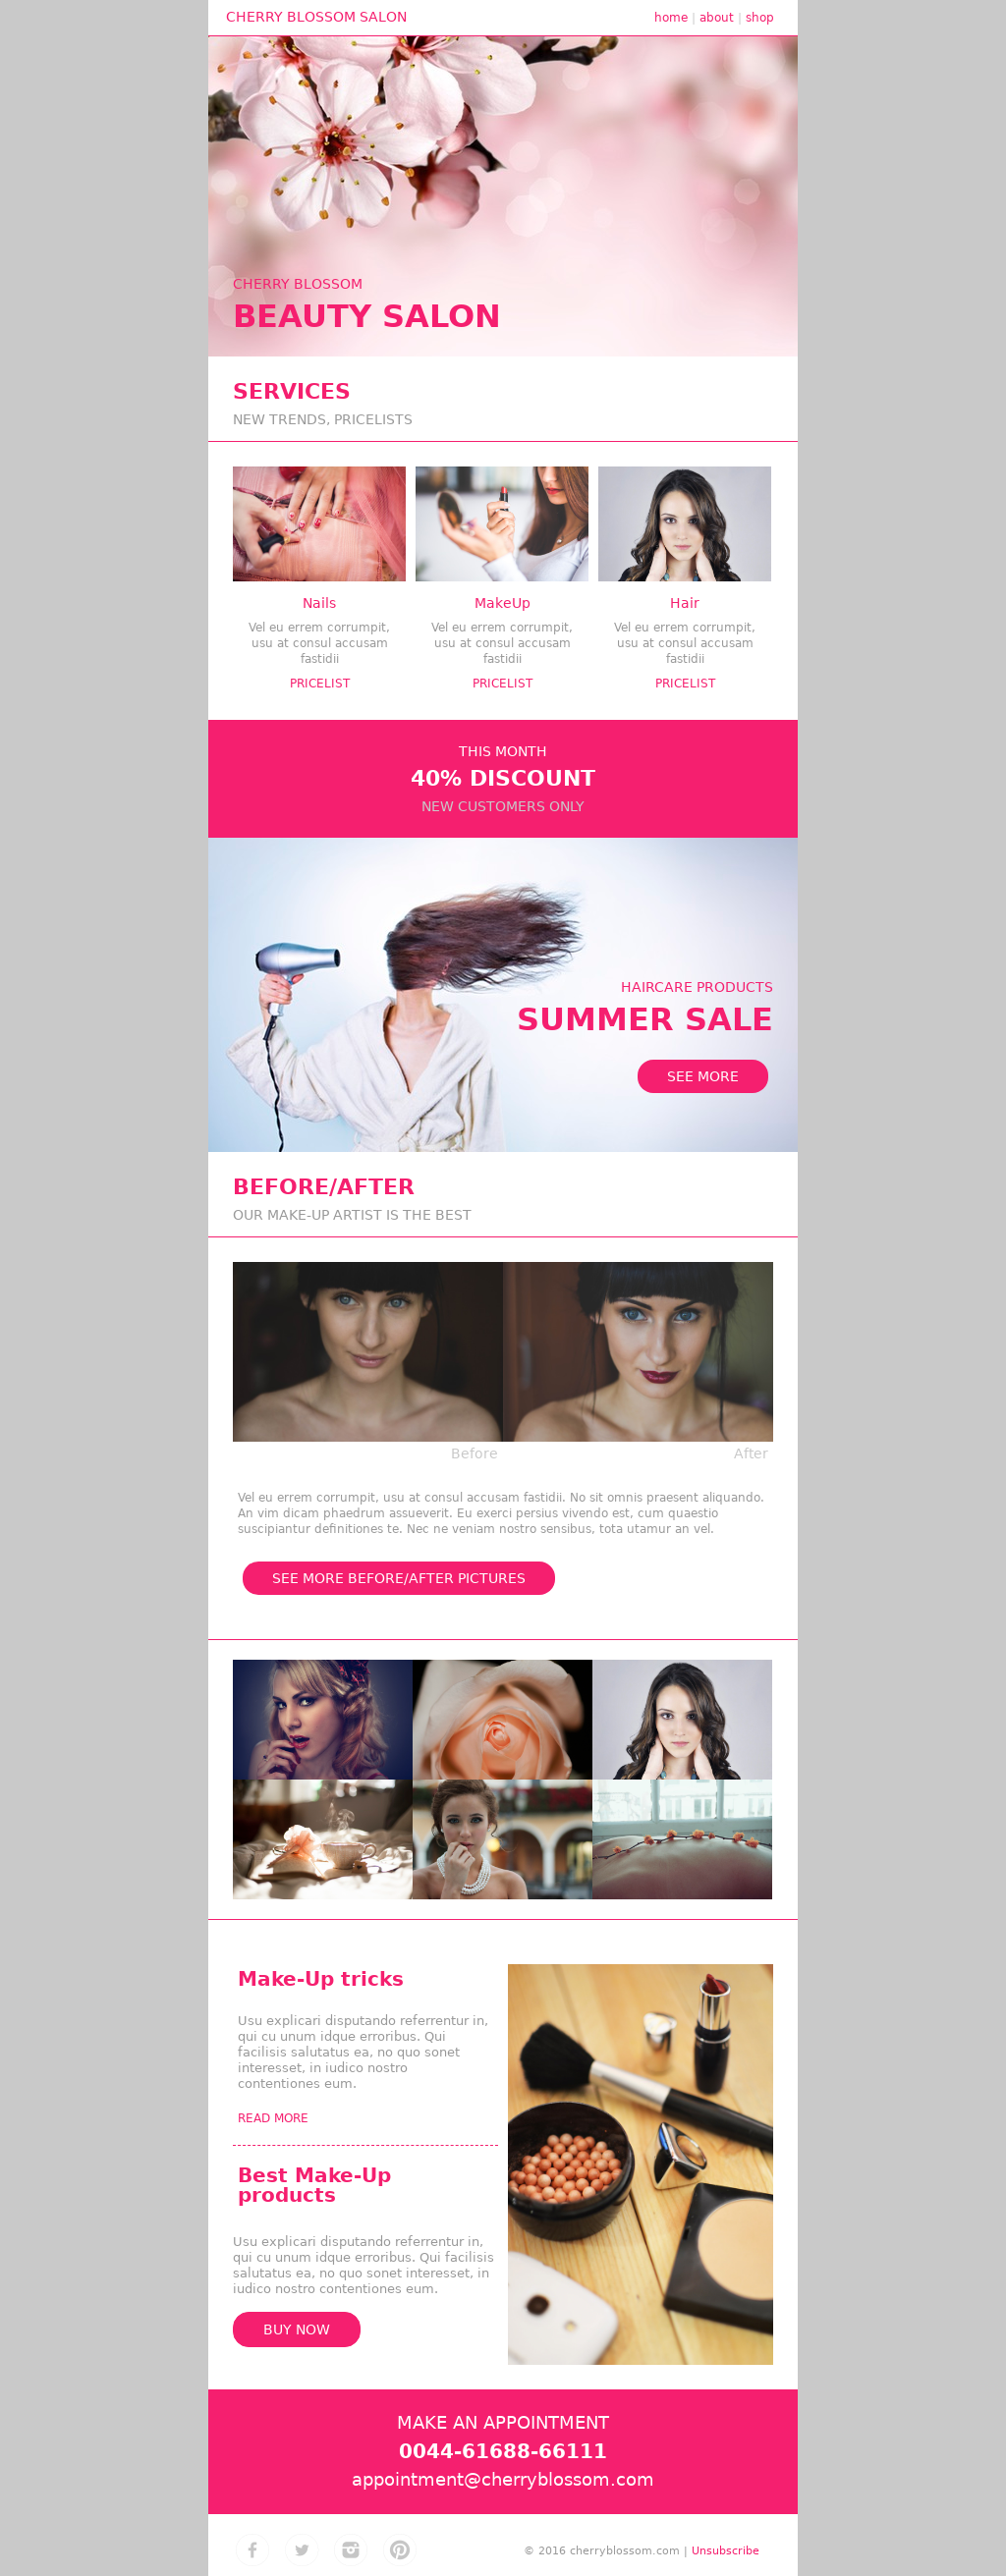 Cherry blossom elegant beauty or message salon email template